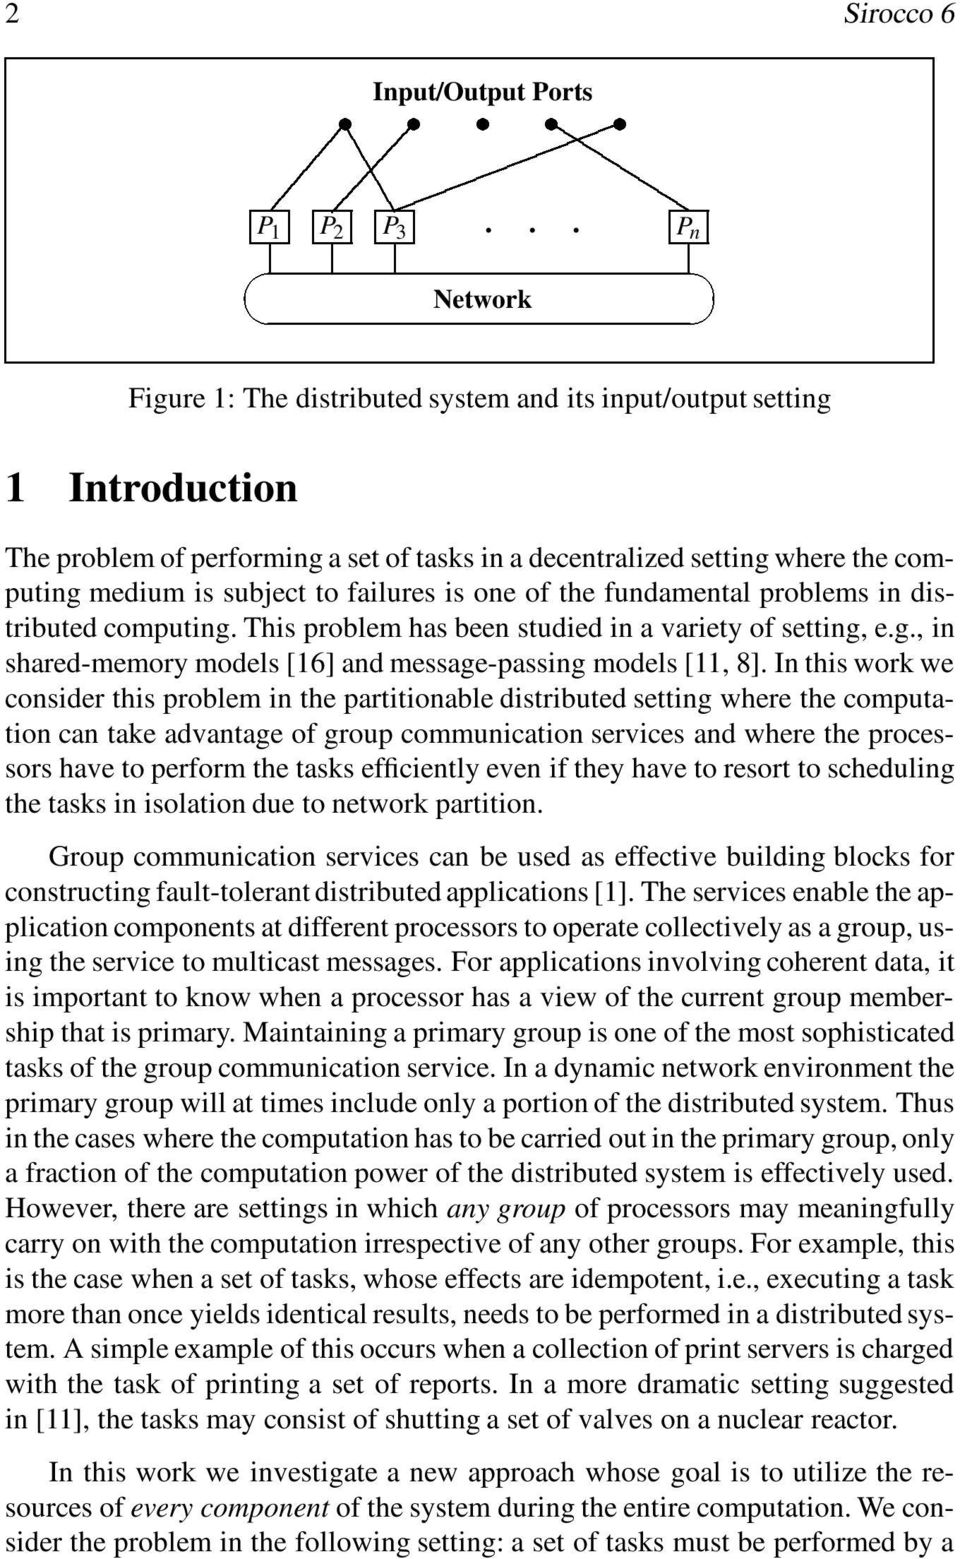 to failures is one of the fundamental problems in distributed computing. This problem has been studied in a variety of setting, e.g., in shared-memory models [16] and message-passing models [11, 8].